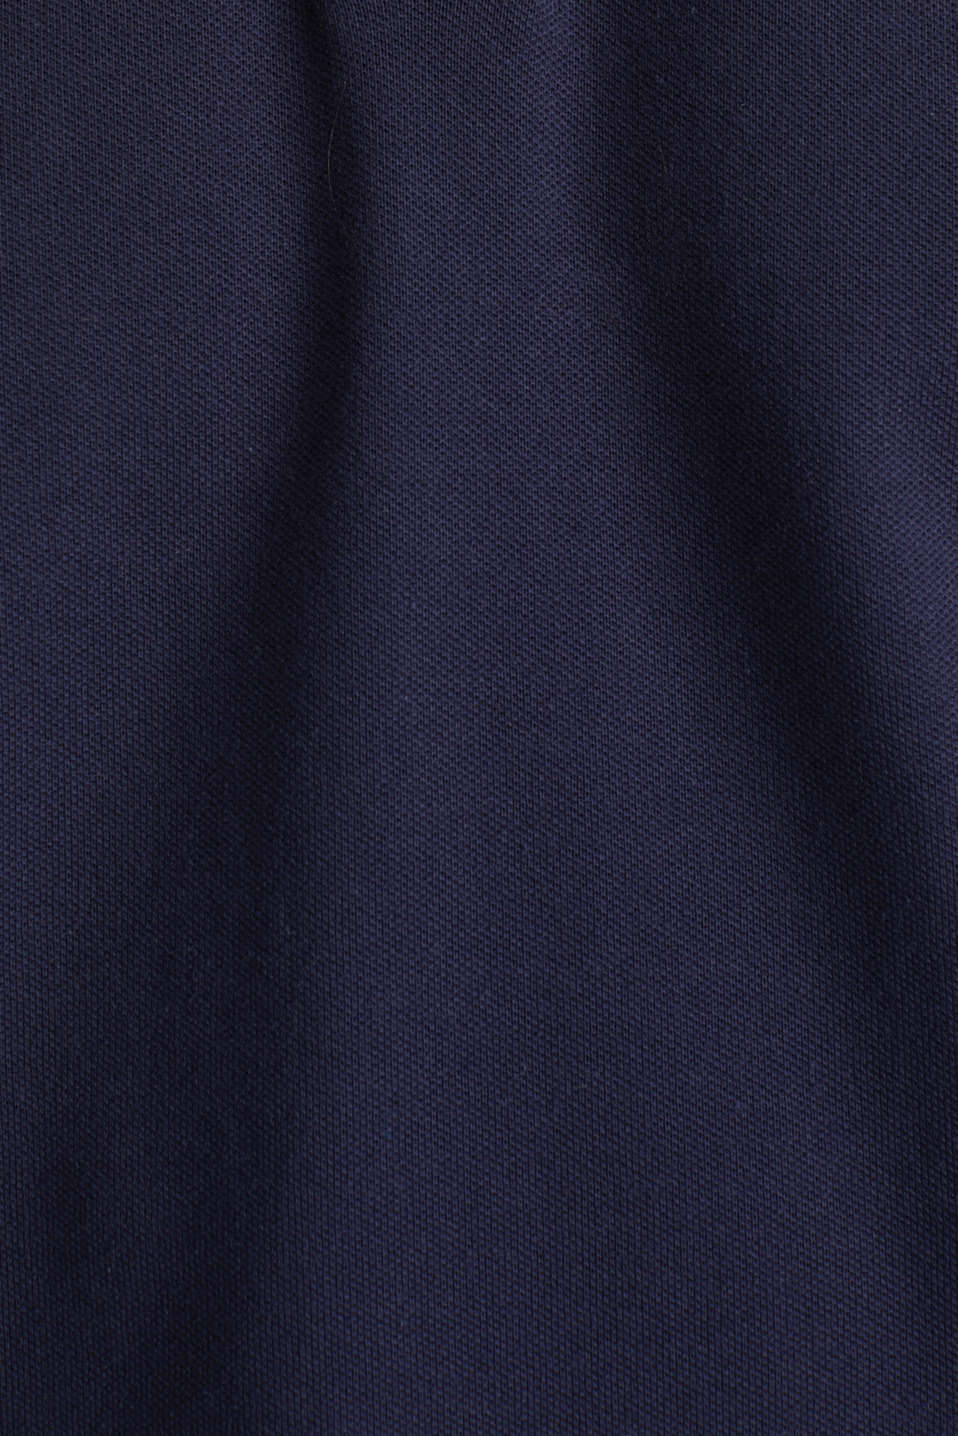 Piqué polo shirt with a stand-up collar, NAVY, detail image number 4